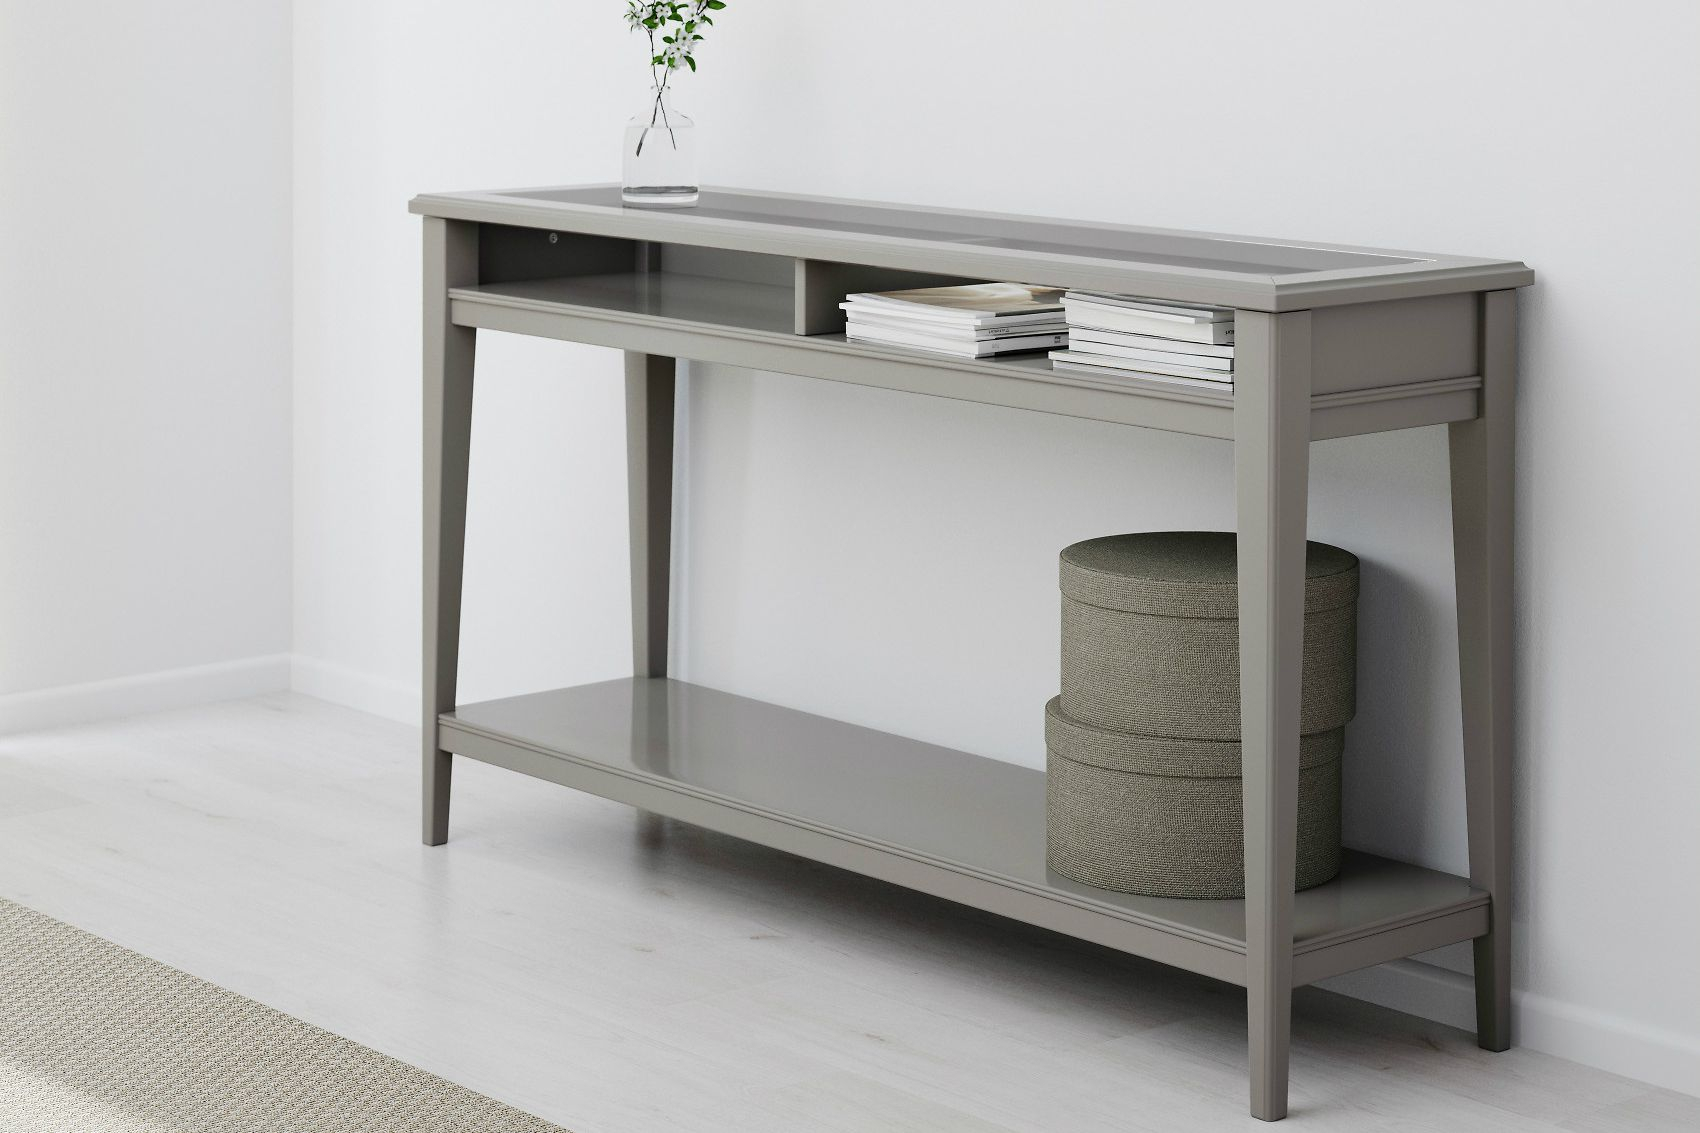 13 Pretty Console And Entry Tables For Your Home with regard to Intarsia Console Tables (Image 4 of 30)